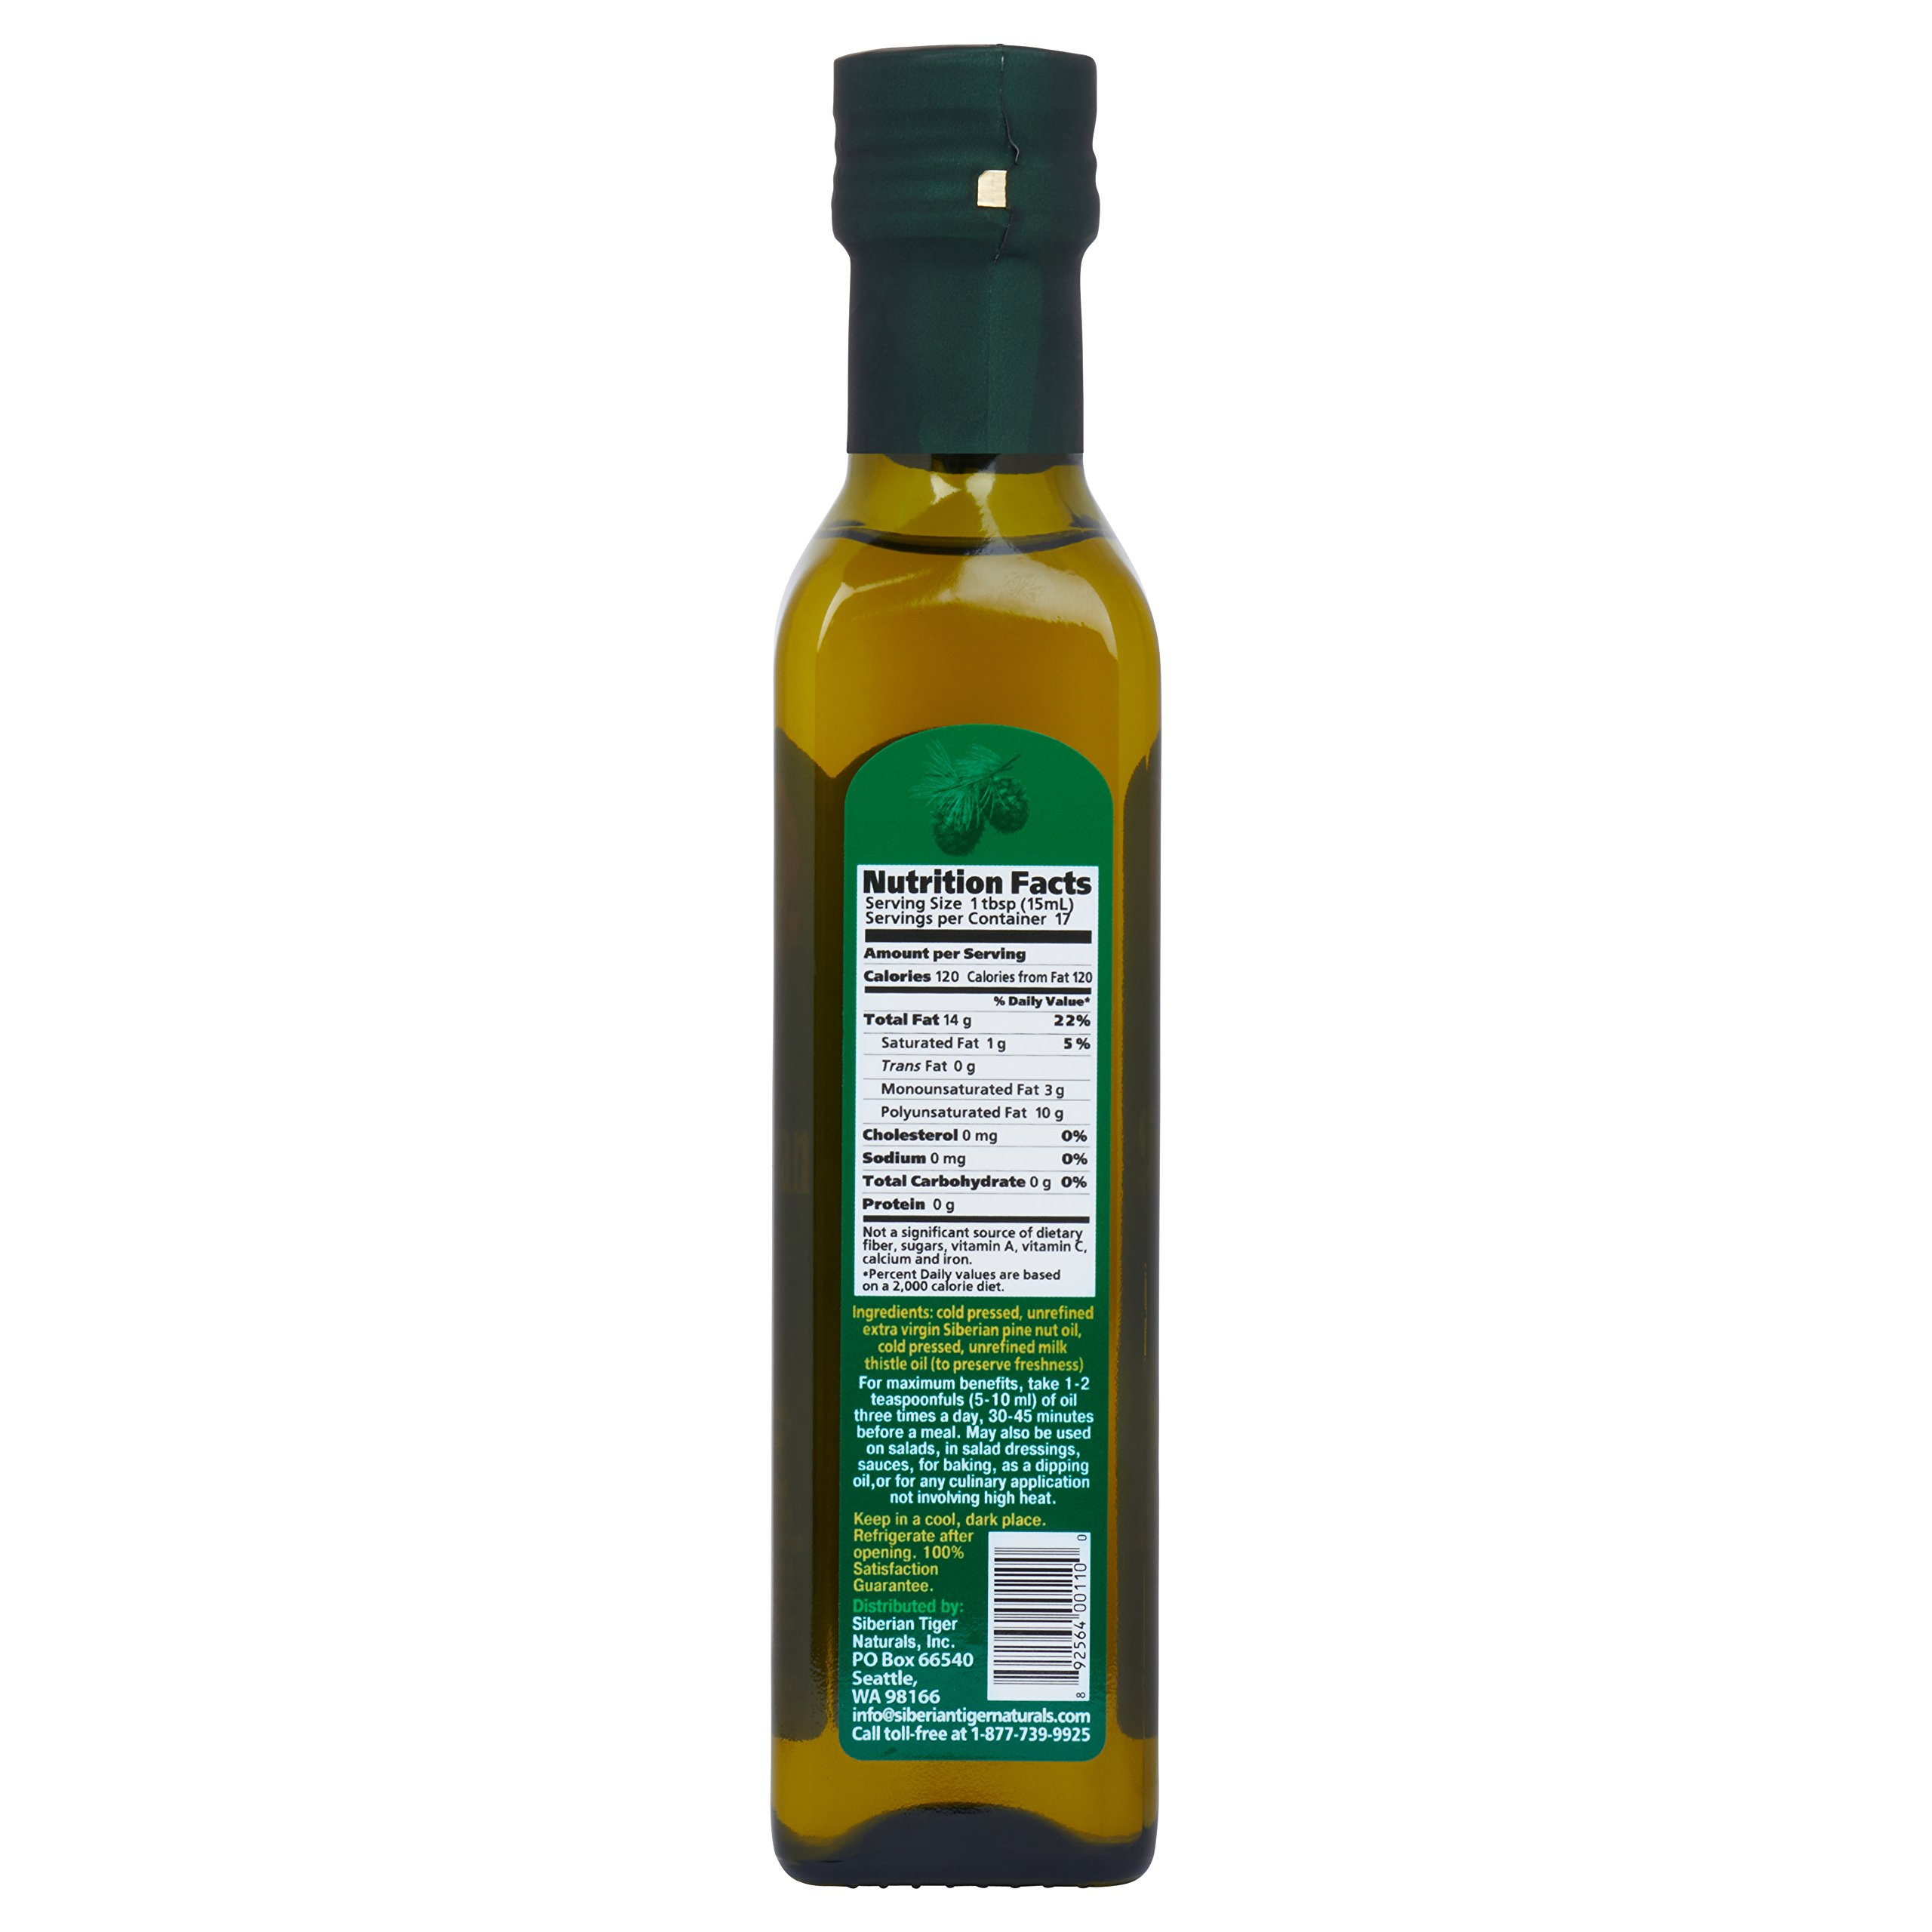 Extra Virgin Siberian Pine Nut Oil, 8.5 oz. Bottle - Premium Quality, Unrefined, 100% Natural - Benefits Overall Health & Aids Gastritis, Ulcers, Digestive Issues by Siberian Tiger Naturals (Image #2)